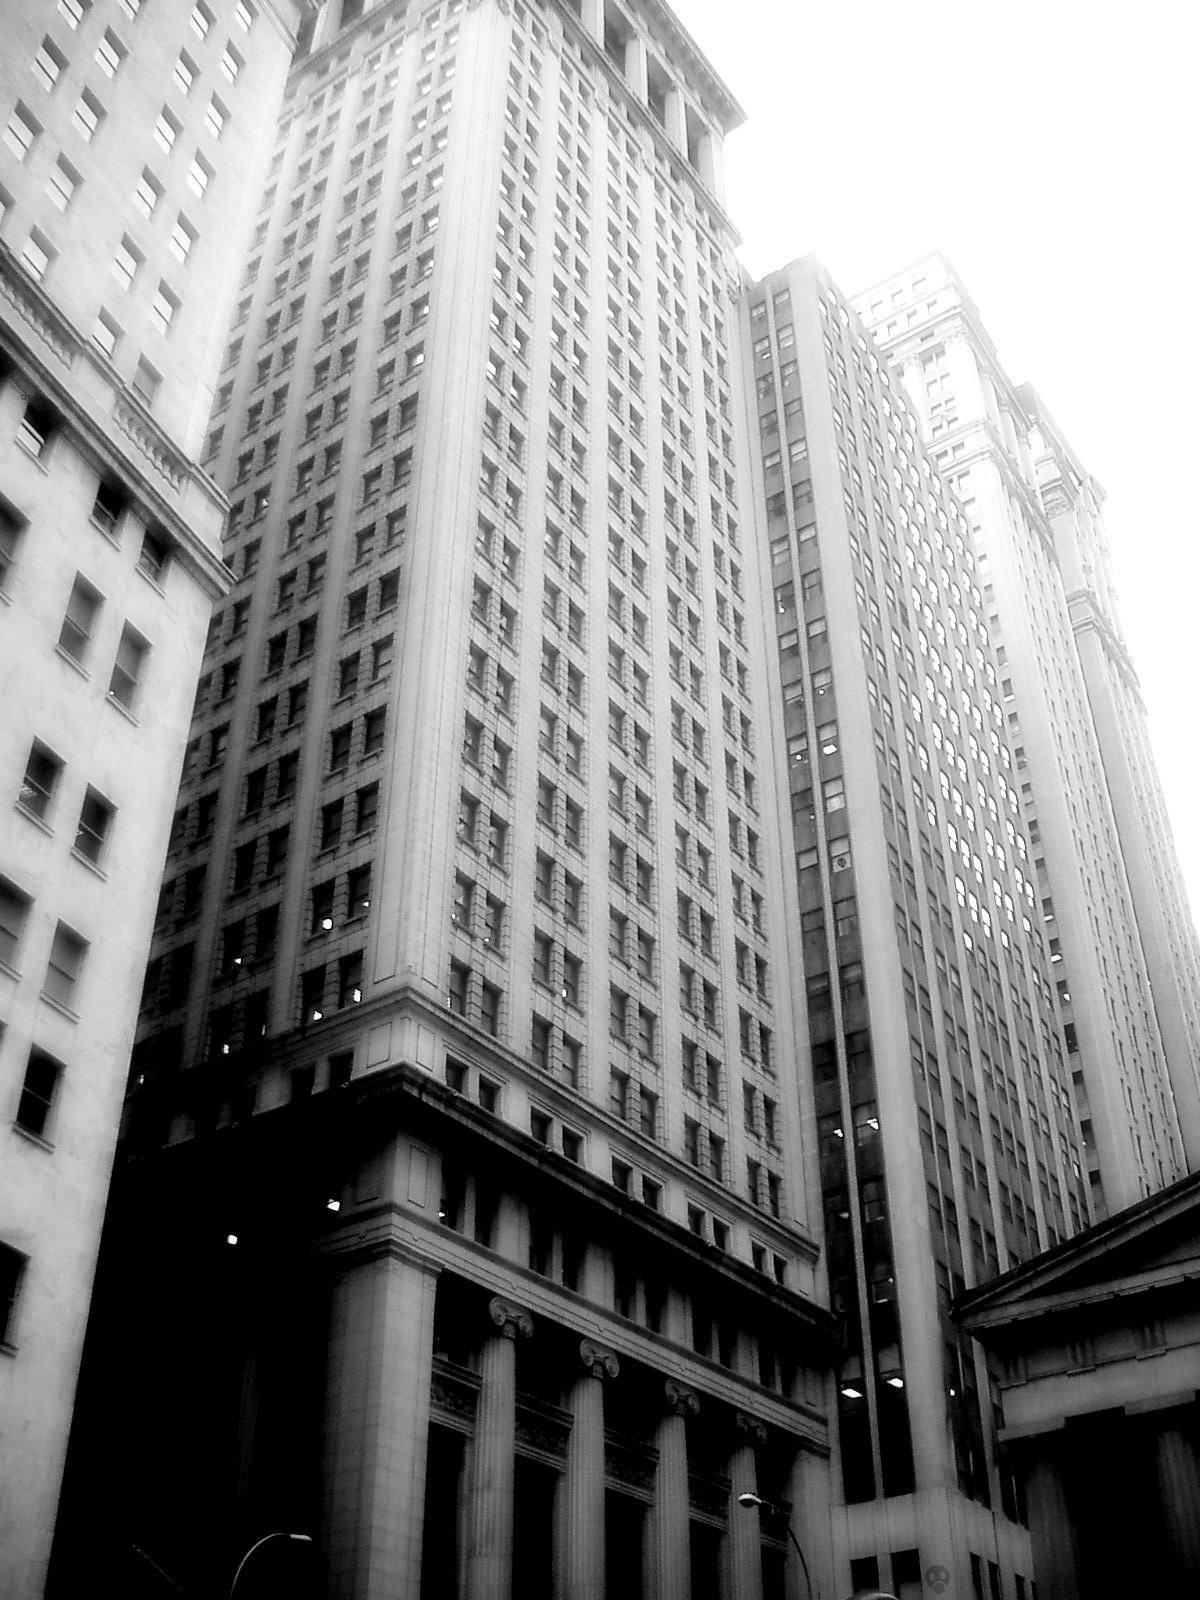 New York City Building By On Deviantart